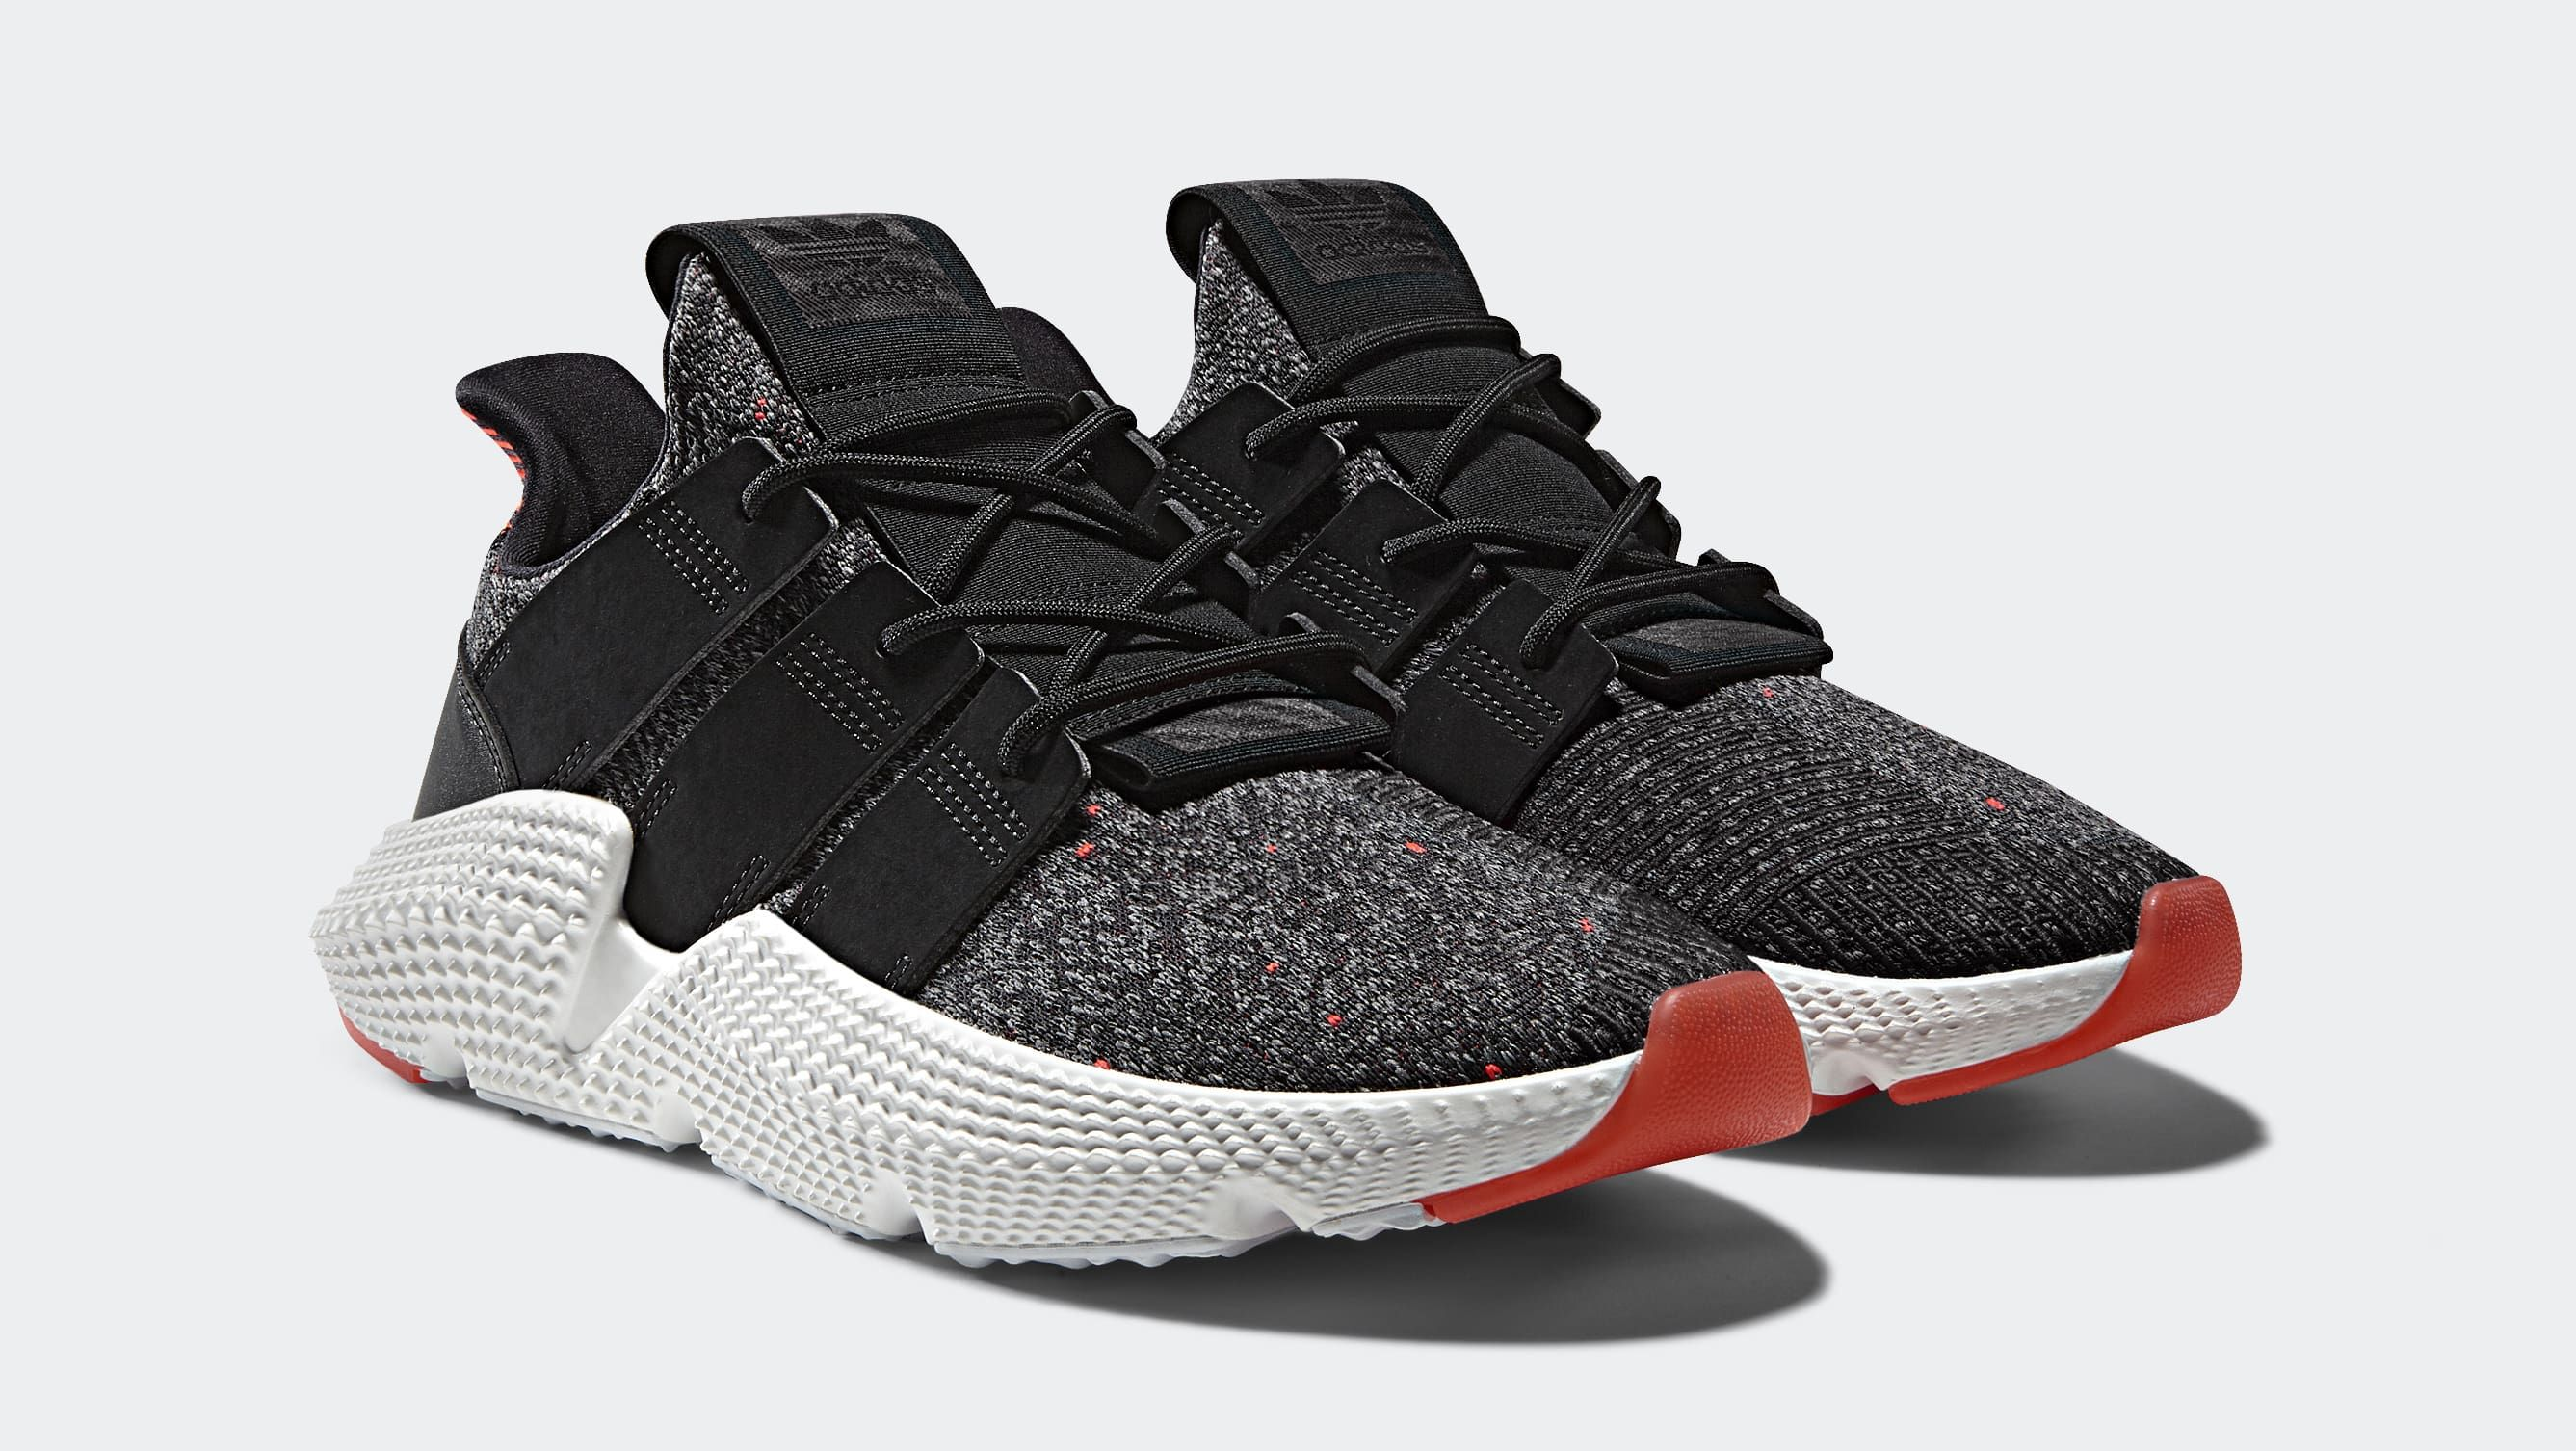 new appearance outlet online 100% quality Adidas Prophere | Sneakers, Sneakers fashion, Adidas